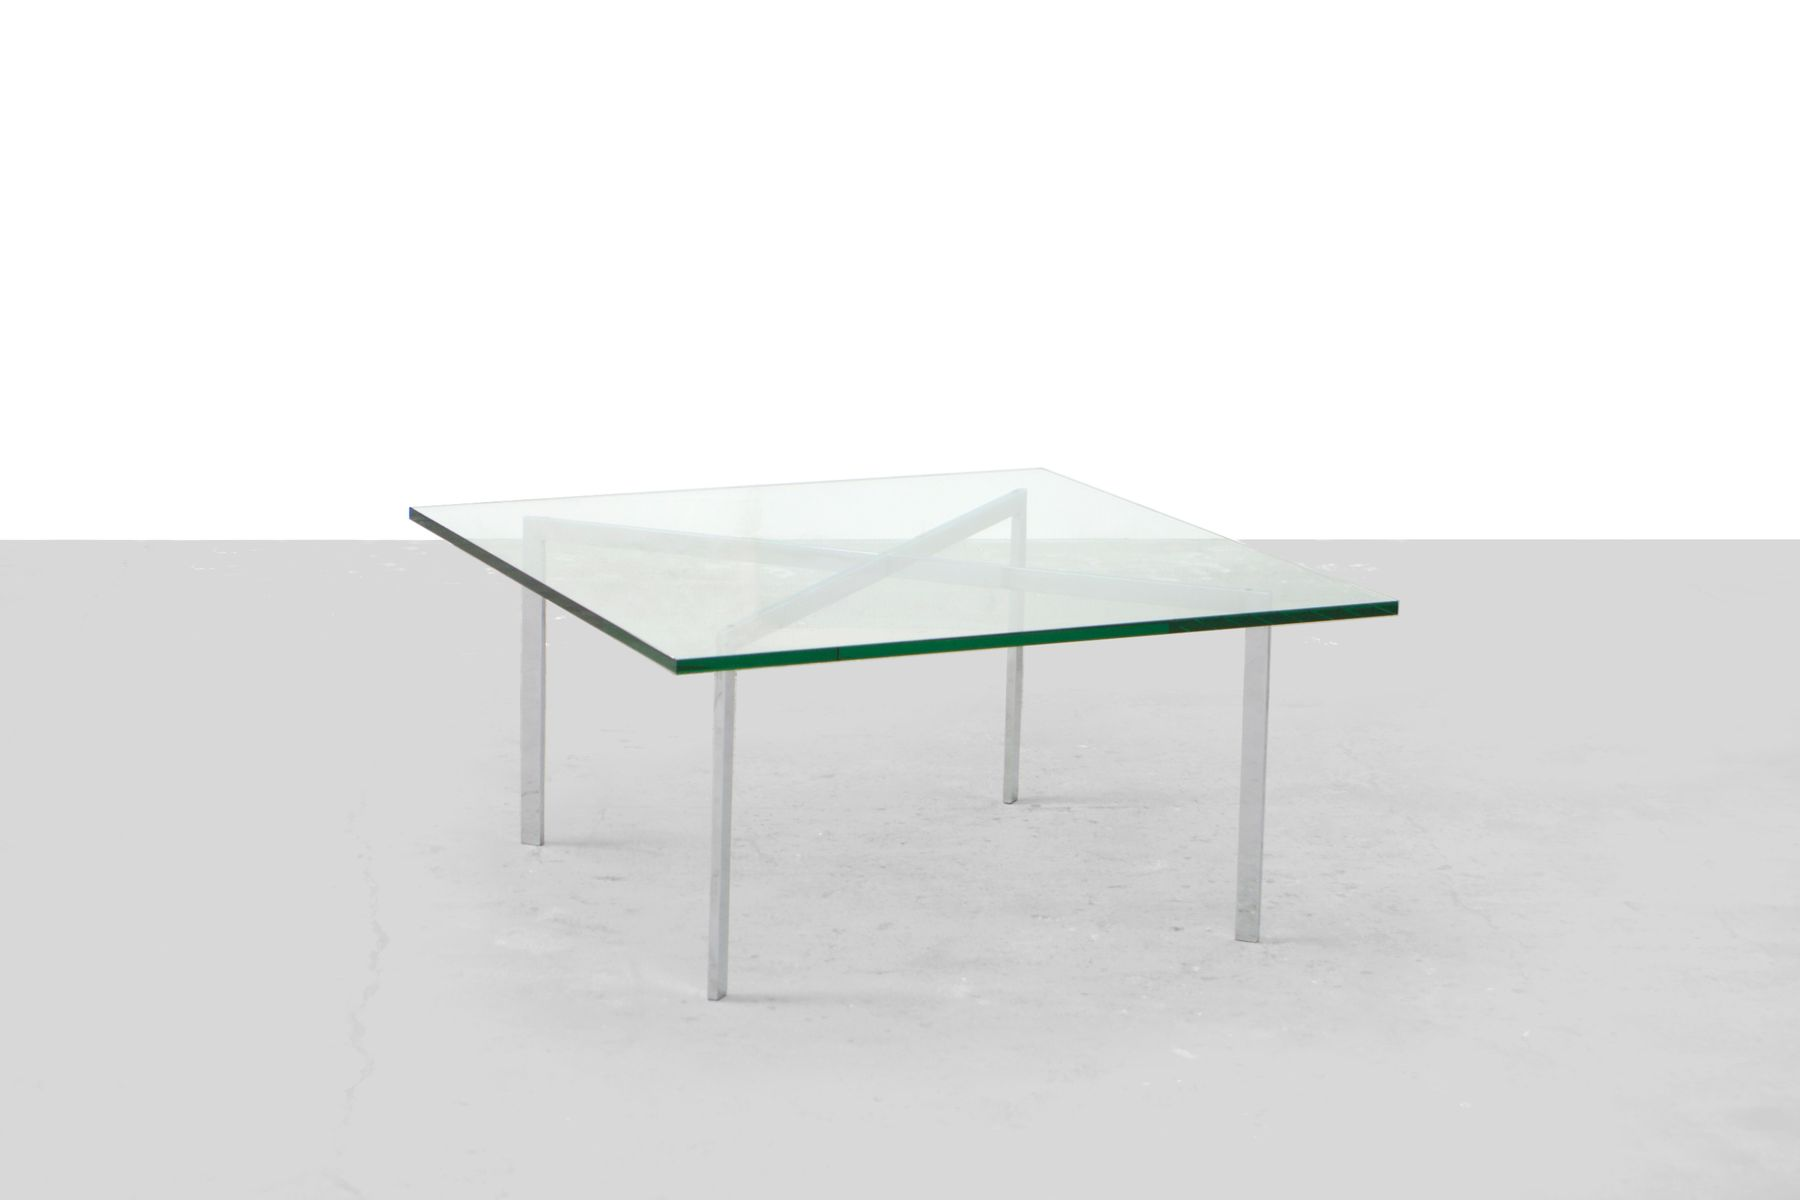 Glass Coffee Table By Mies Van Der Rohe For Knoll 1960 For Sale At Pamono